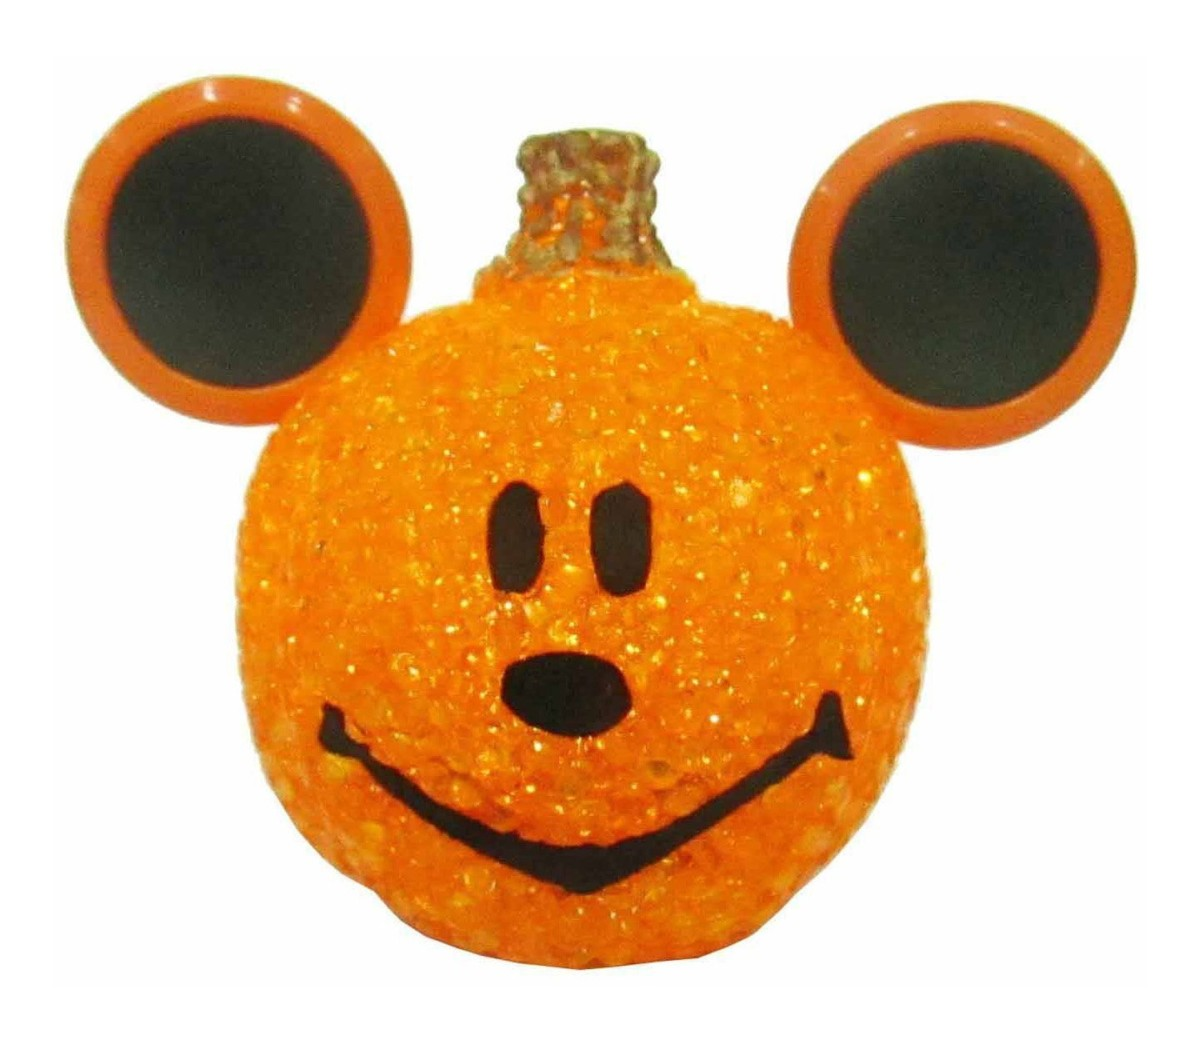 Disney Halloween Decorations For Your Home 2